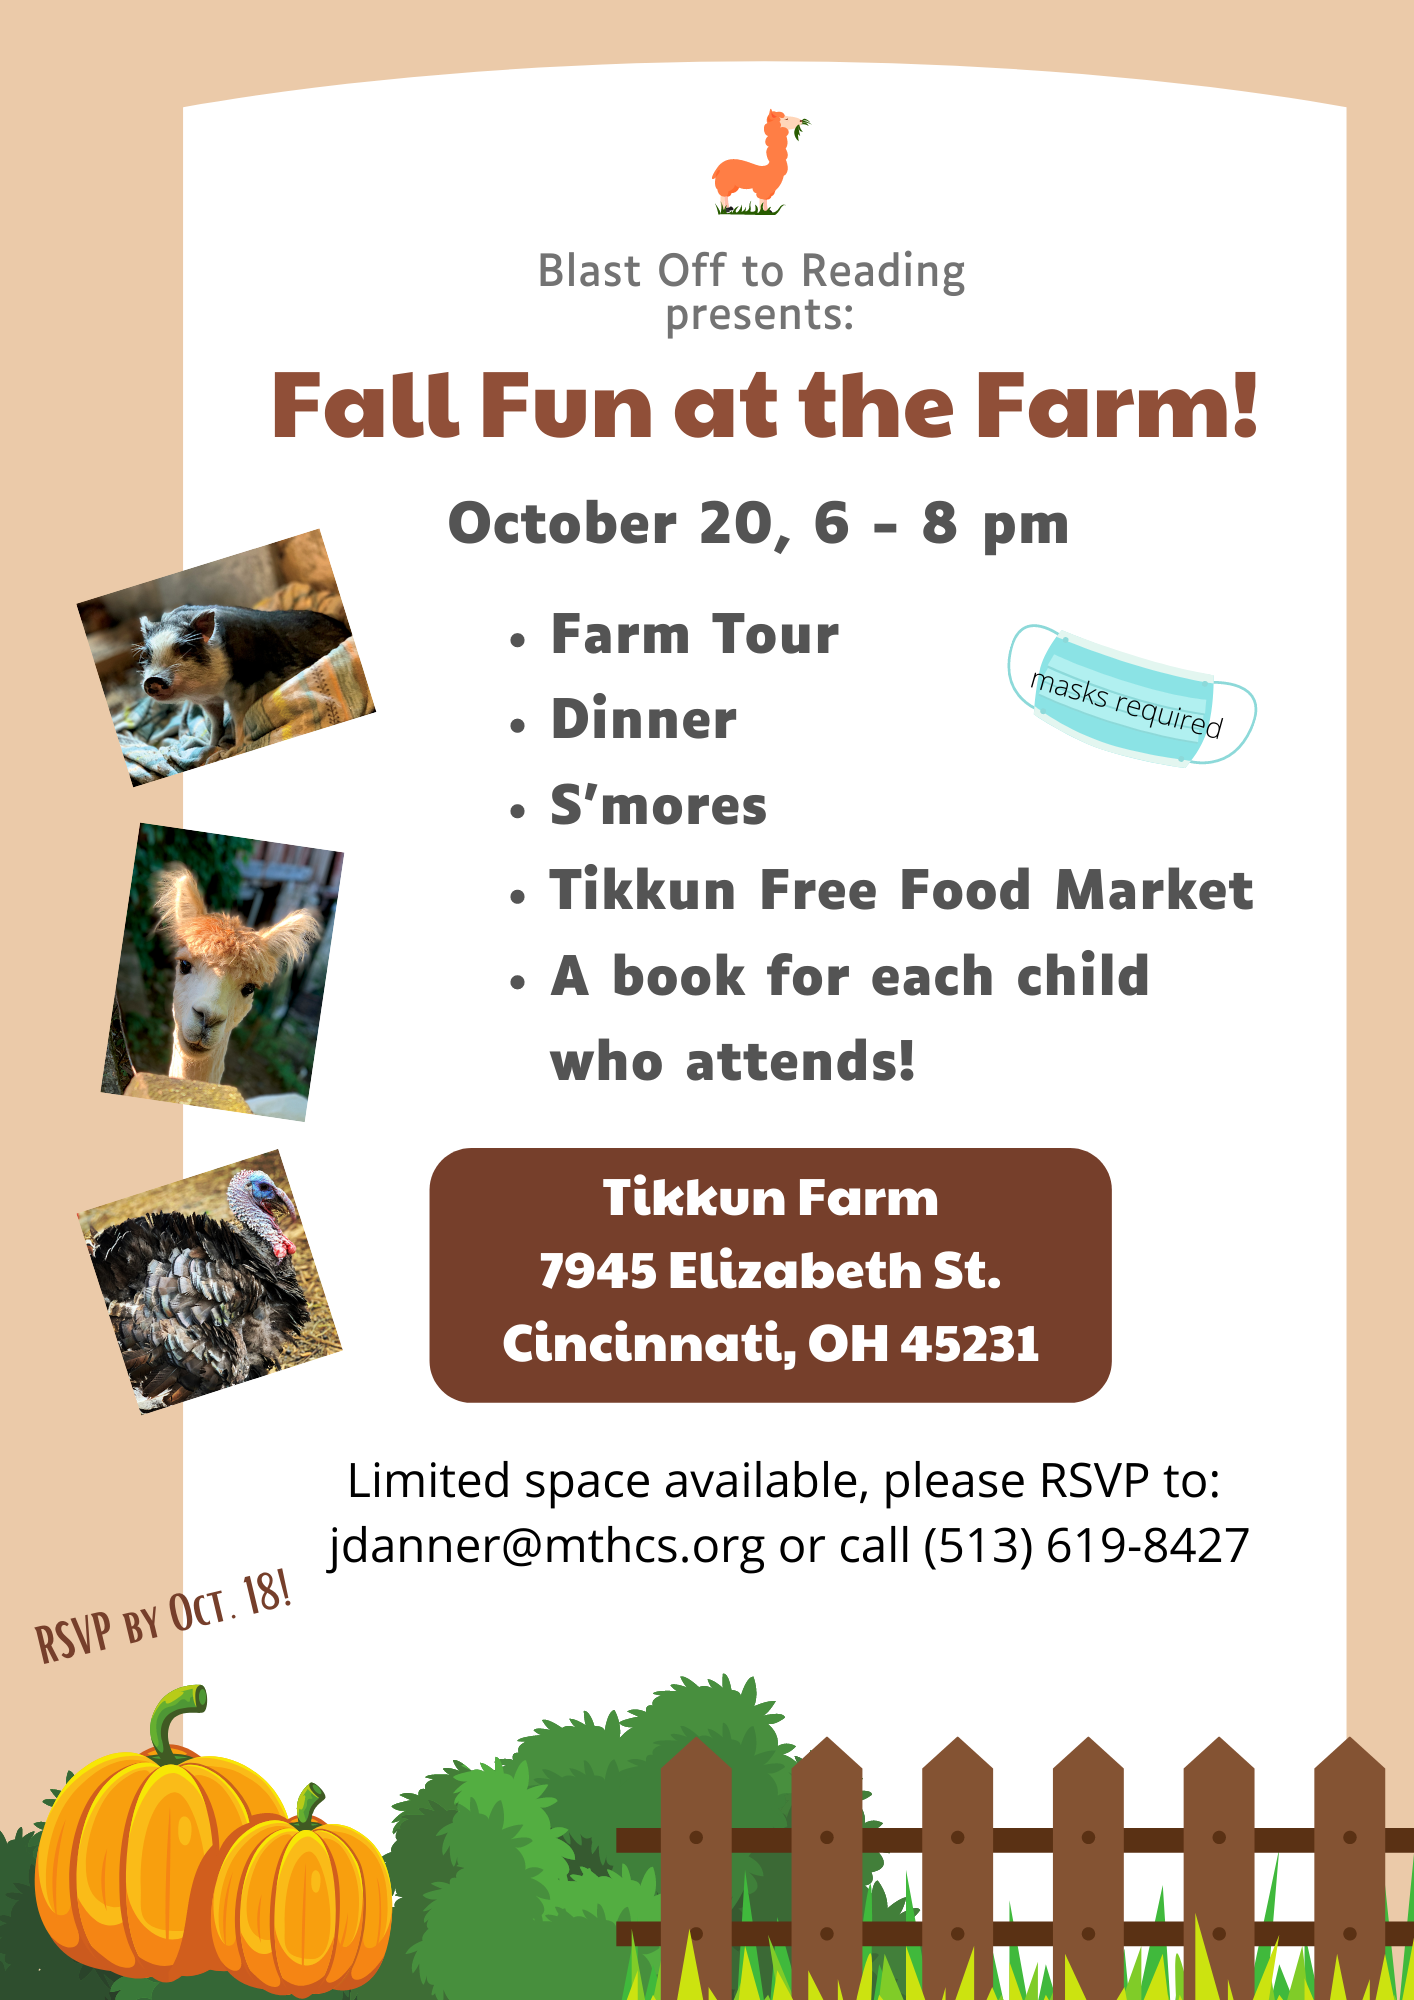 Fall Fun at the Farm event on Oct 20